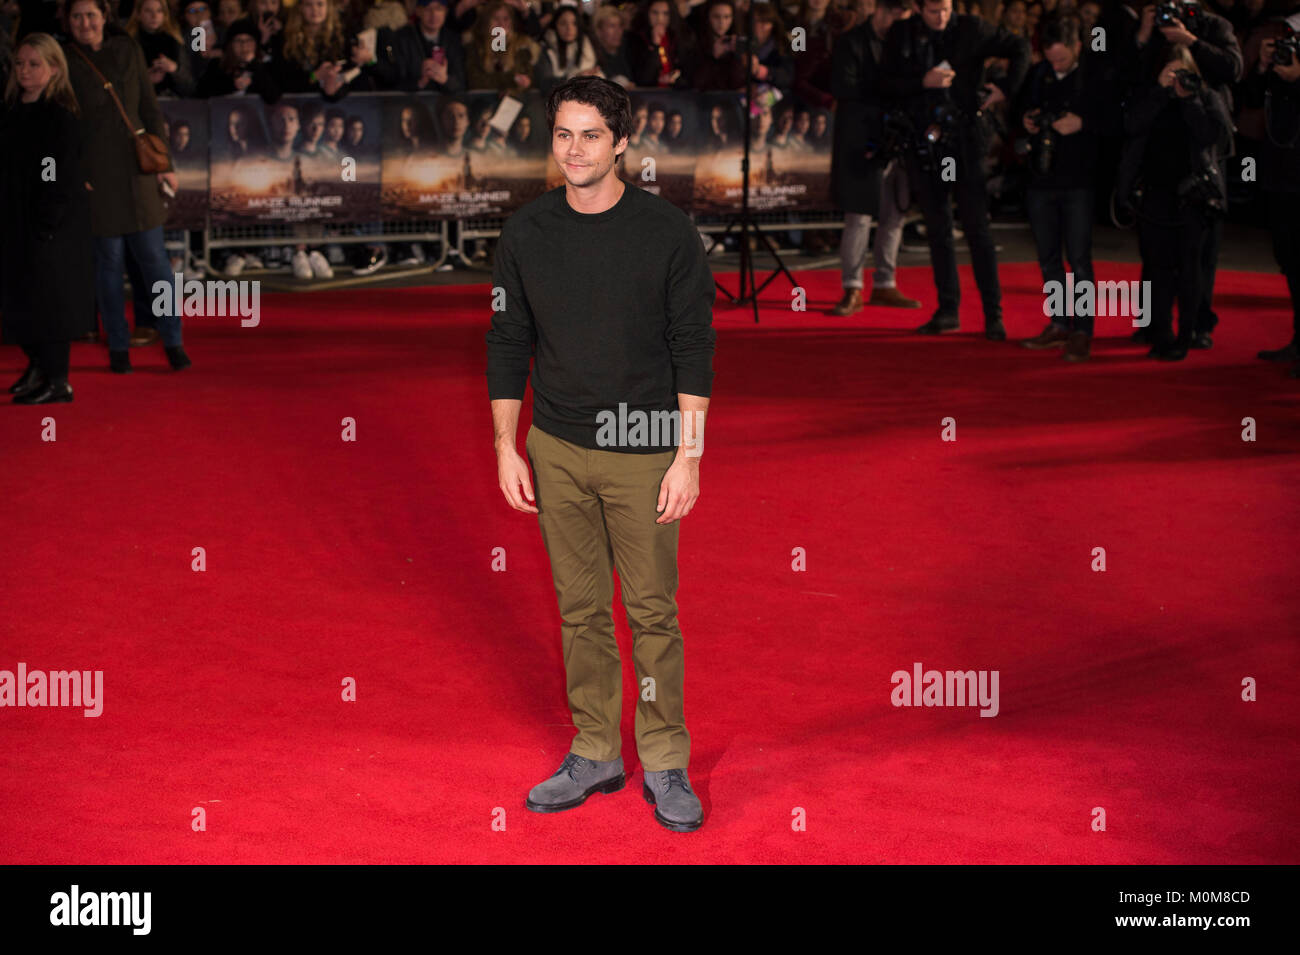 London, UK. 22nd Jan, 2018. Dylan O'Brien attends the 'Maze Runner: The Death Cure' film premiere, London, - Stock Image